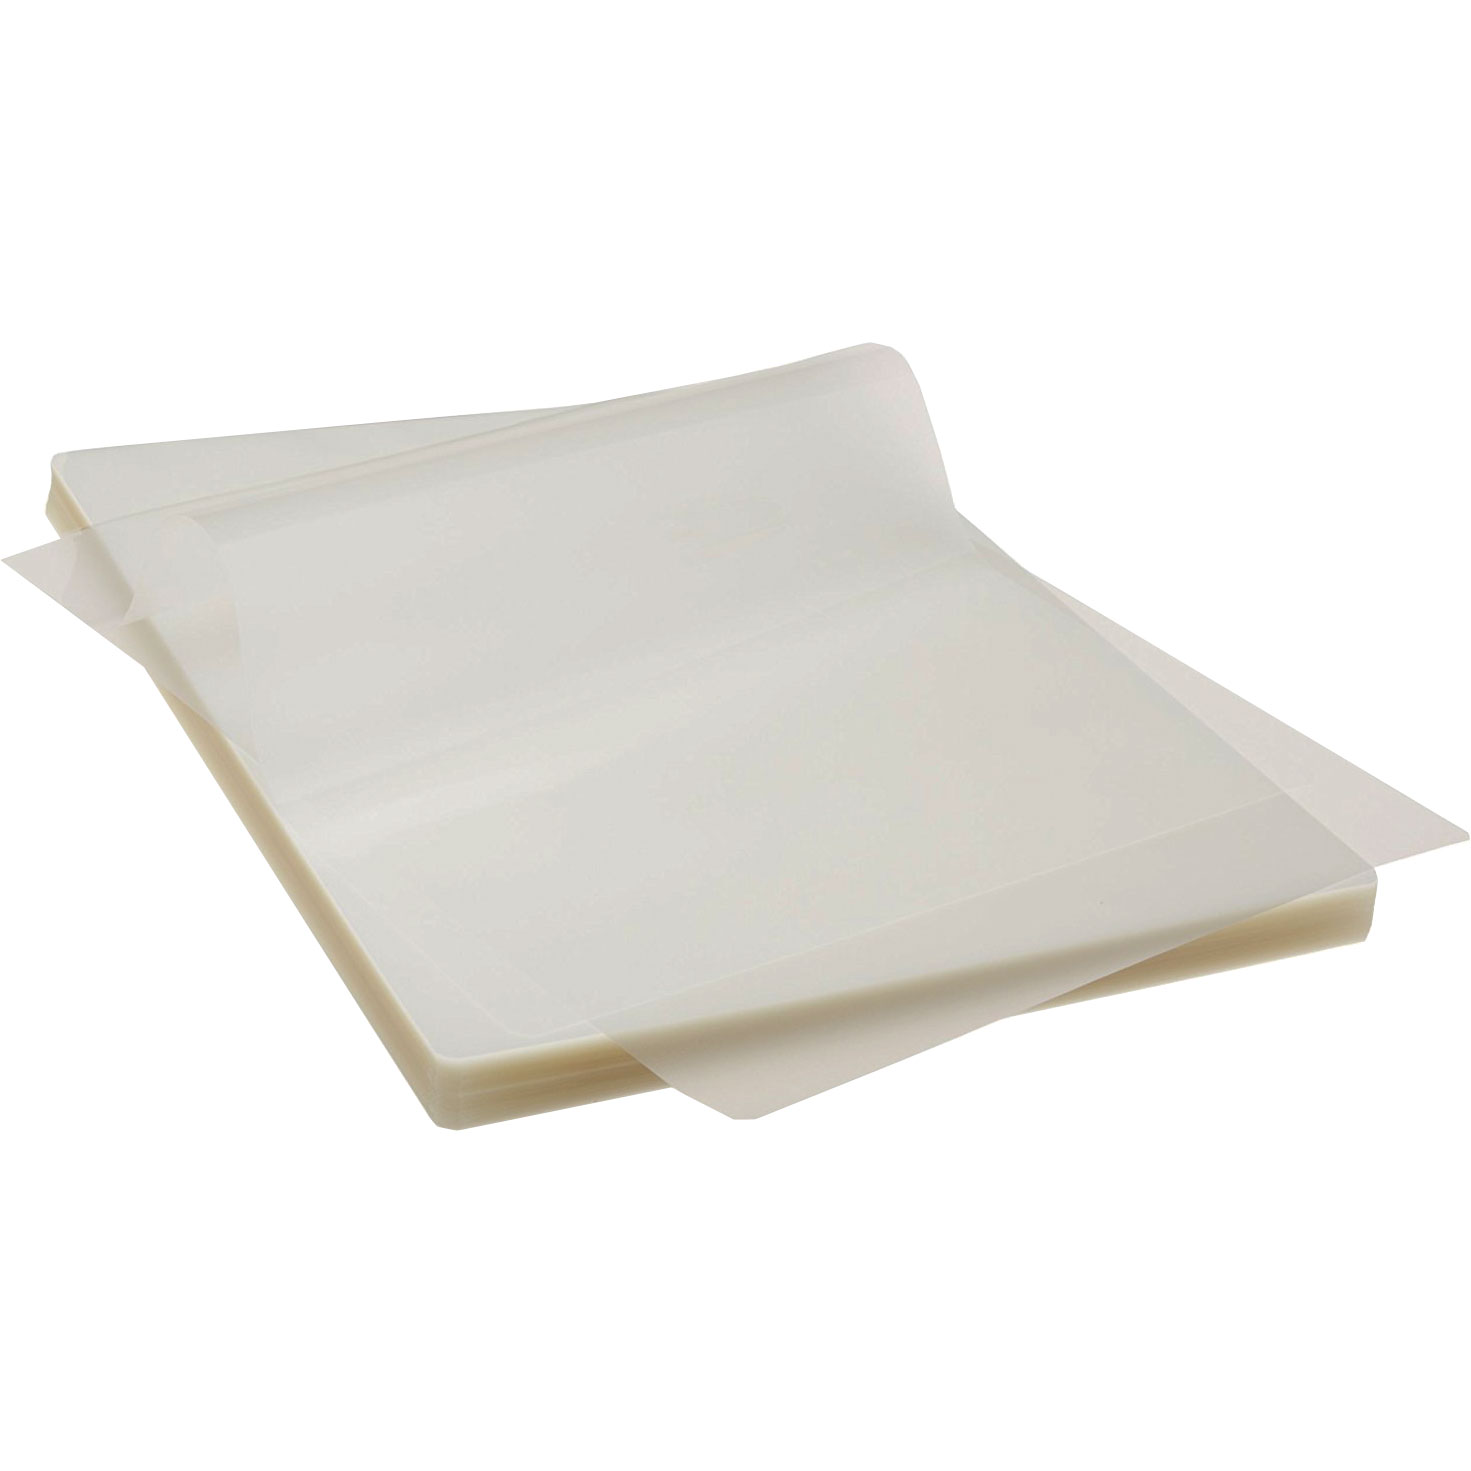 A1 Super-Gloss & Matt Laminating Pouches (125)